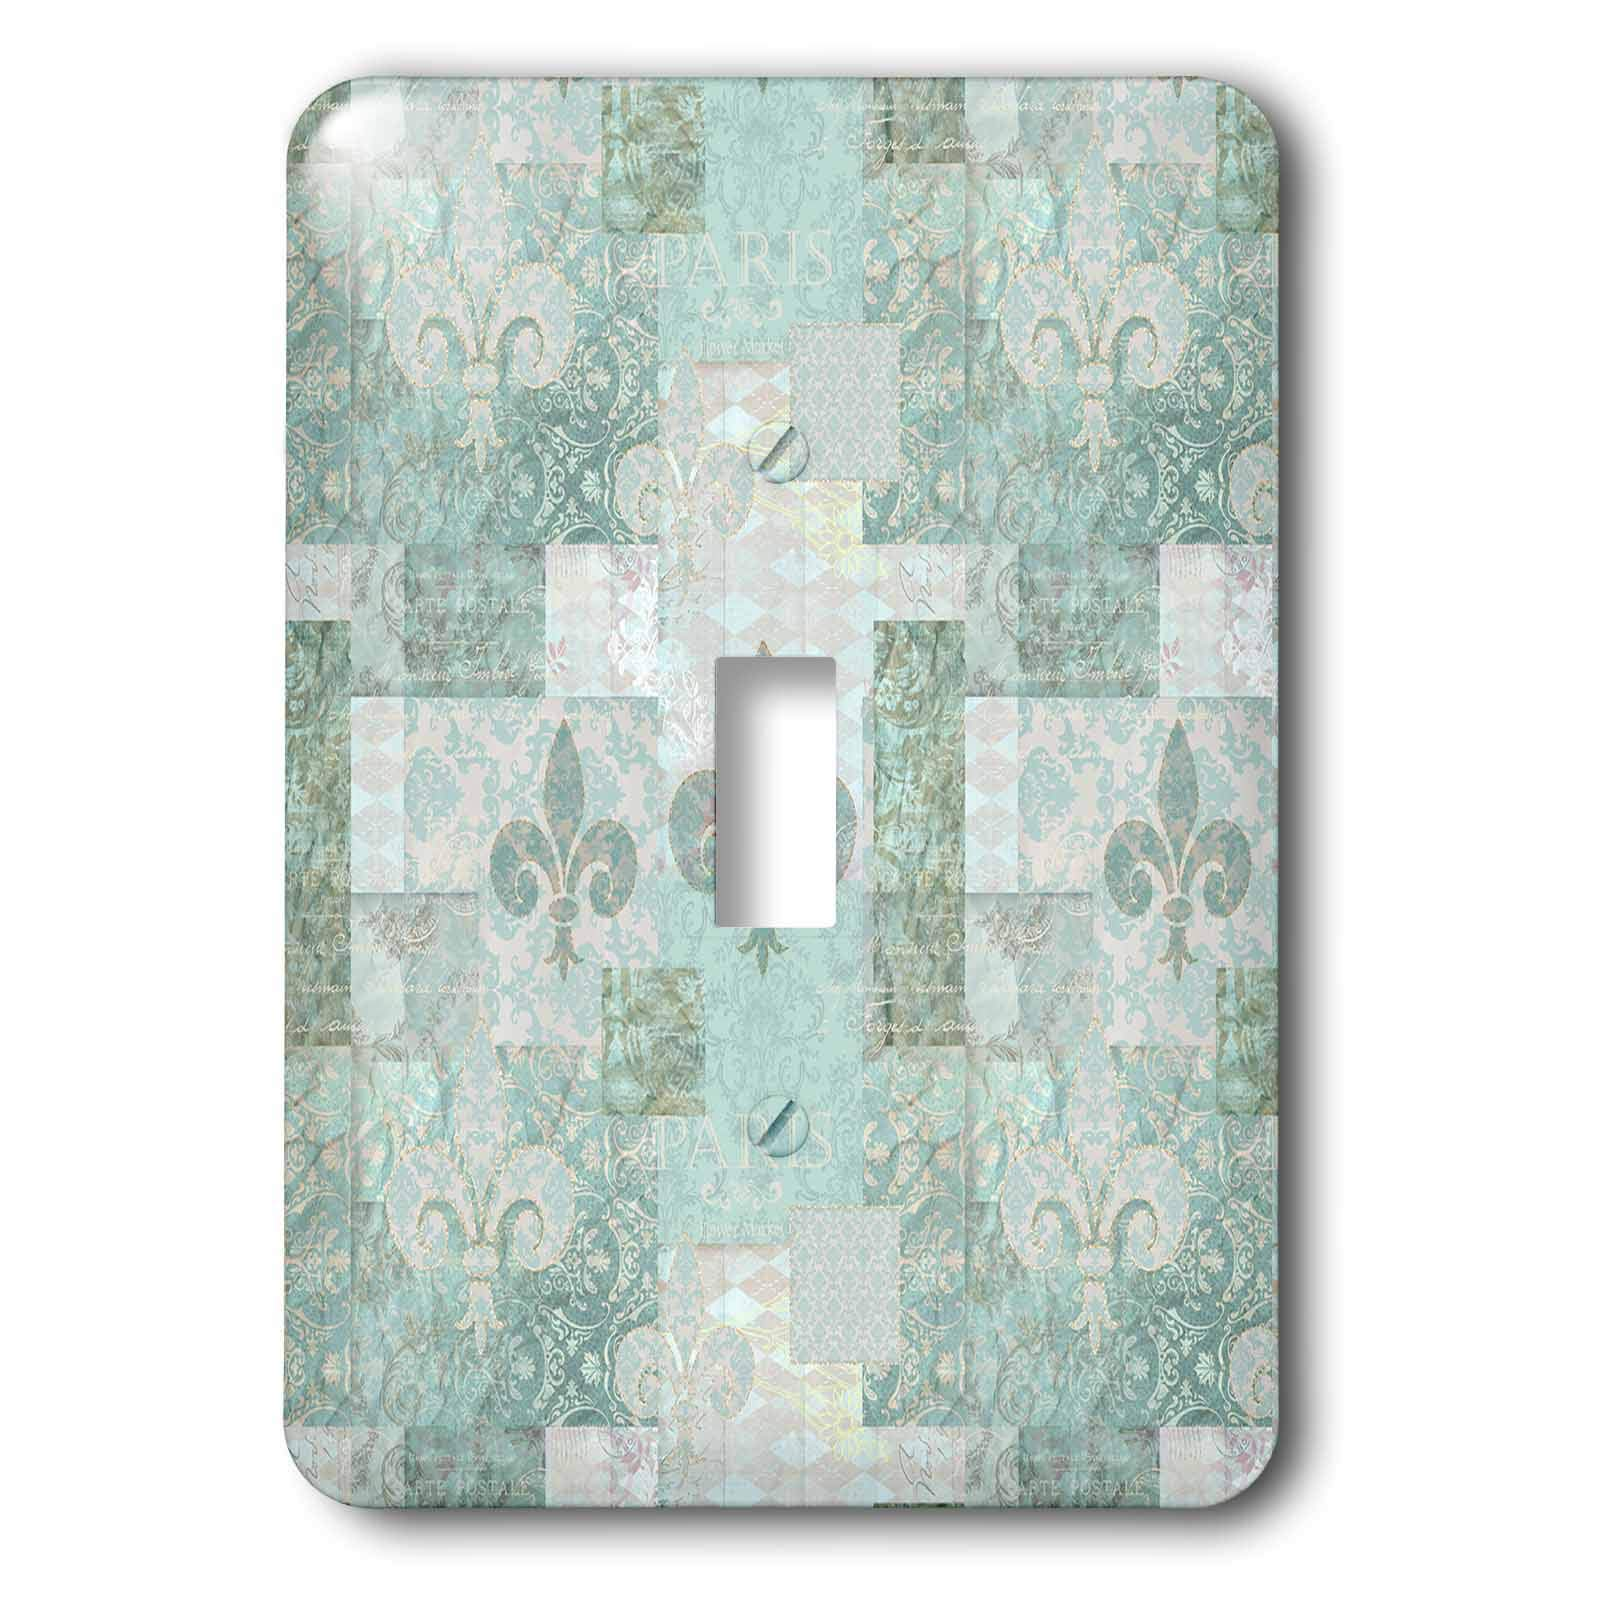 3dRose Andrea Haase Allover Pattern - Vintage Patchwork And Ornament Pattern In Pastel Teal - Light Switch Covers - single toggle switch (lsp_289393_1)